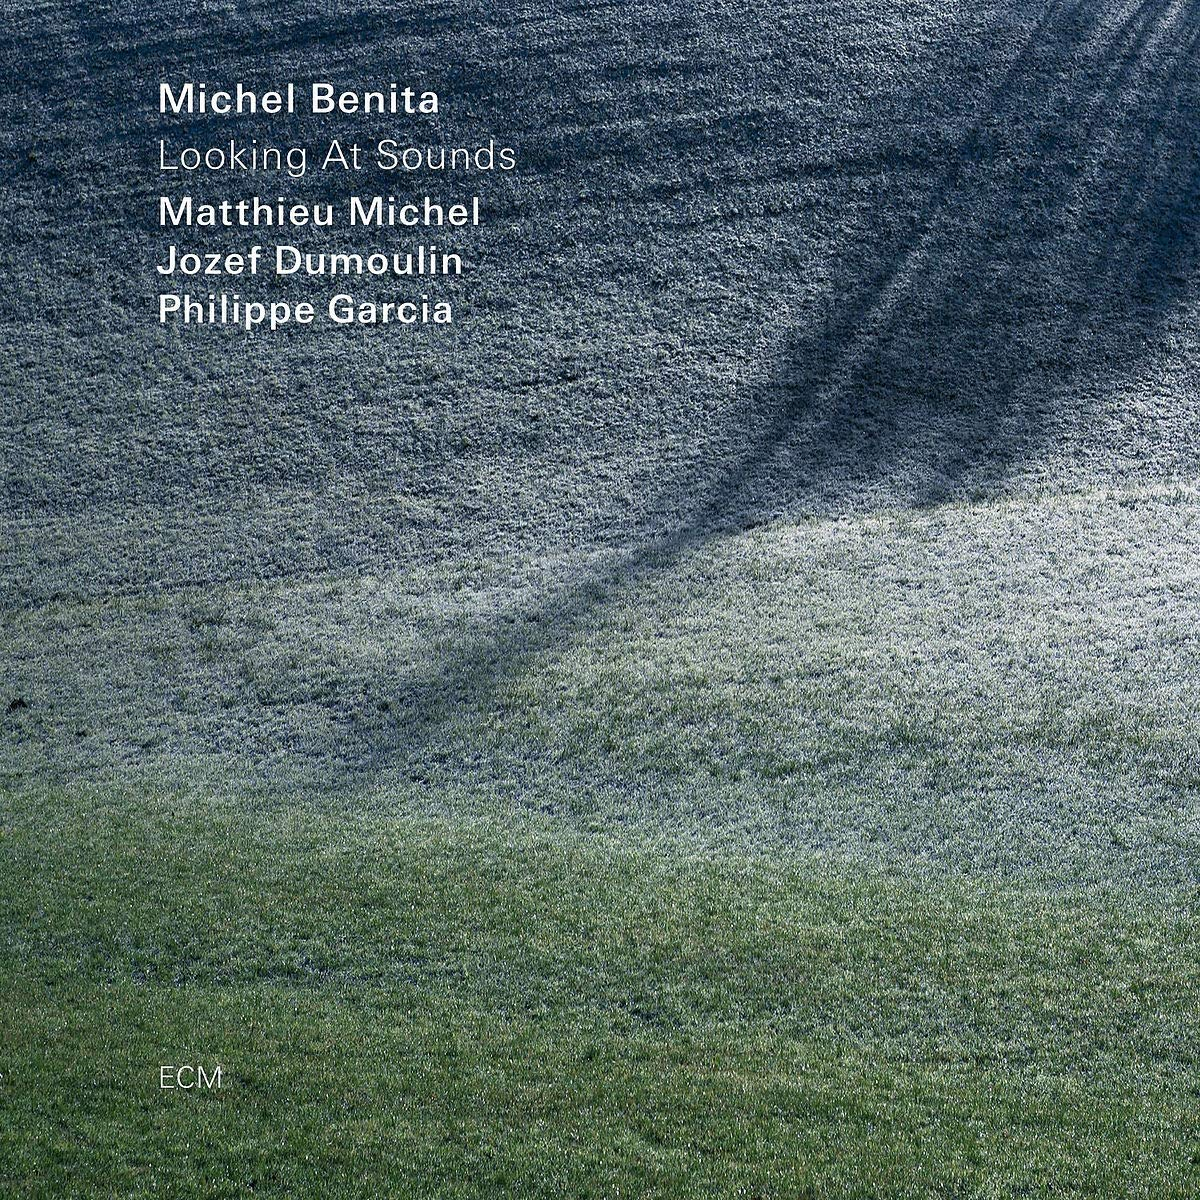 MICHEL BENITA - Looking at Sounds cover